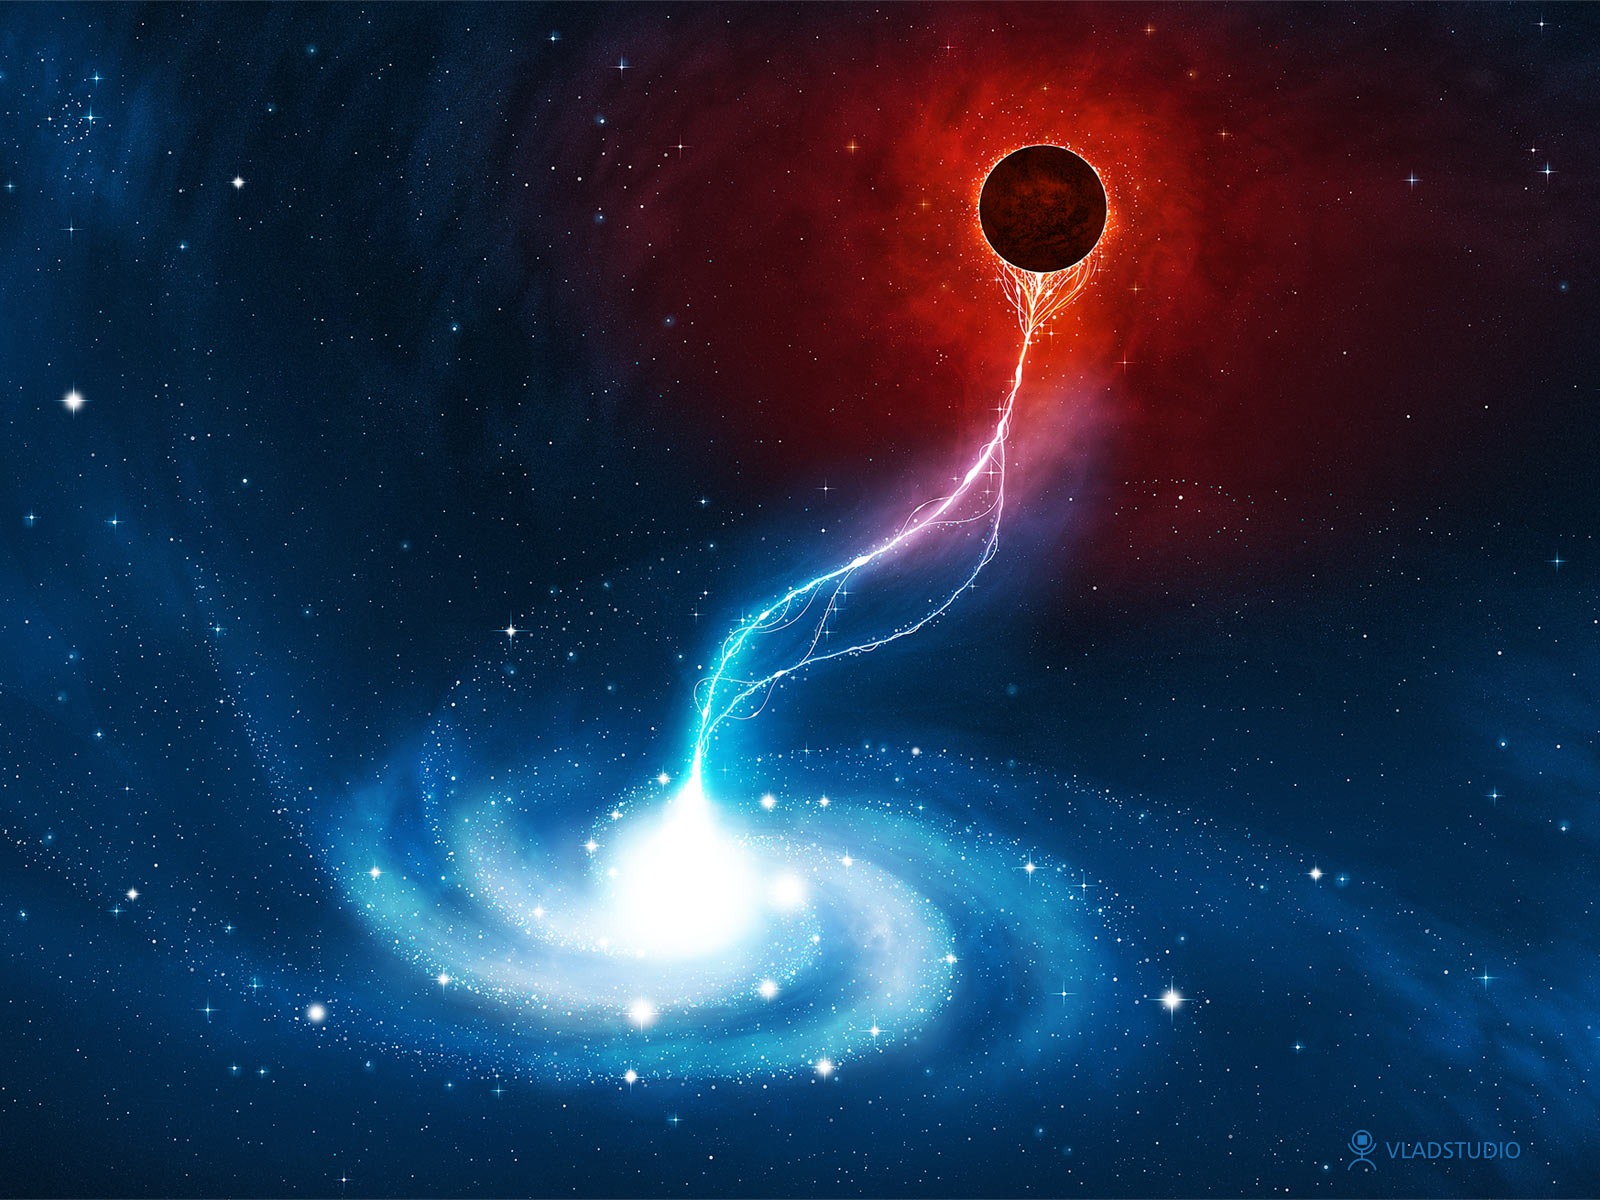 black-hole.jpg blogger1600 × 1200Search by image Penjelasan Dan Fakta Tentang Black Hole ?